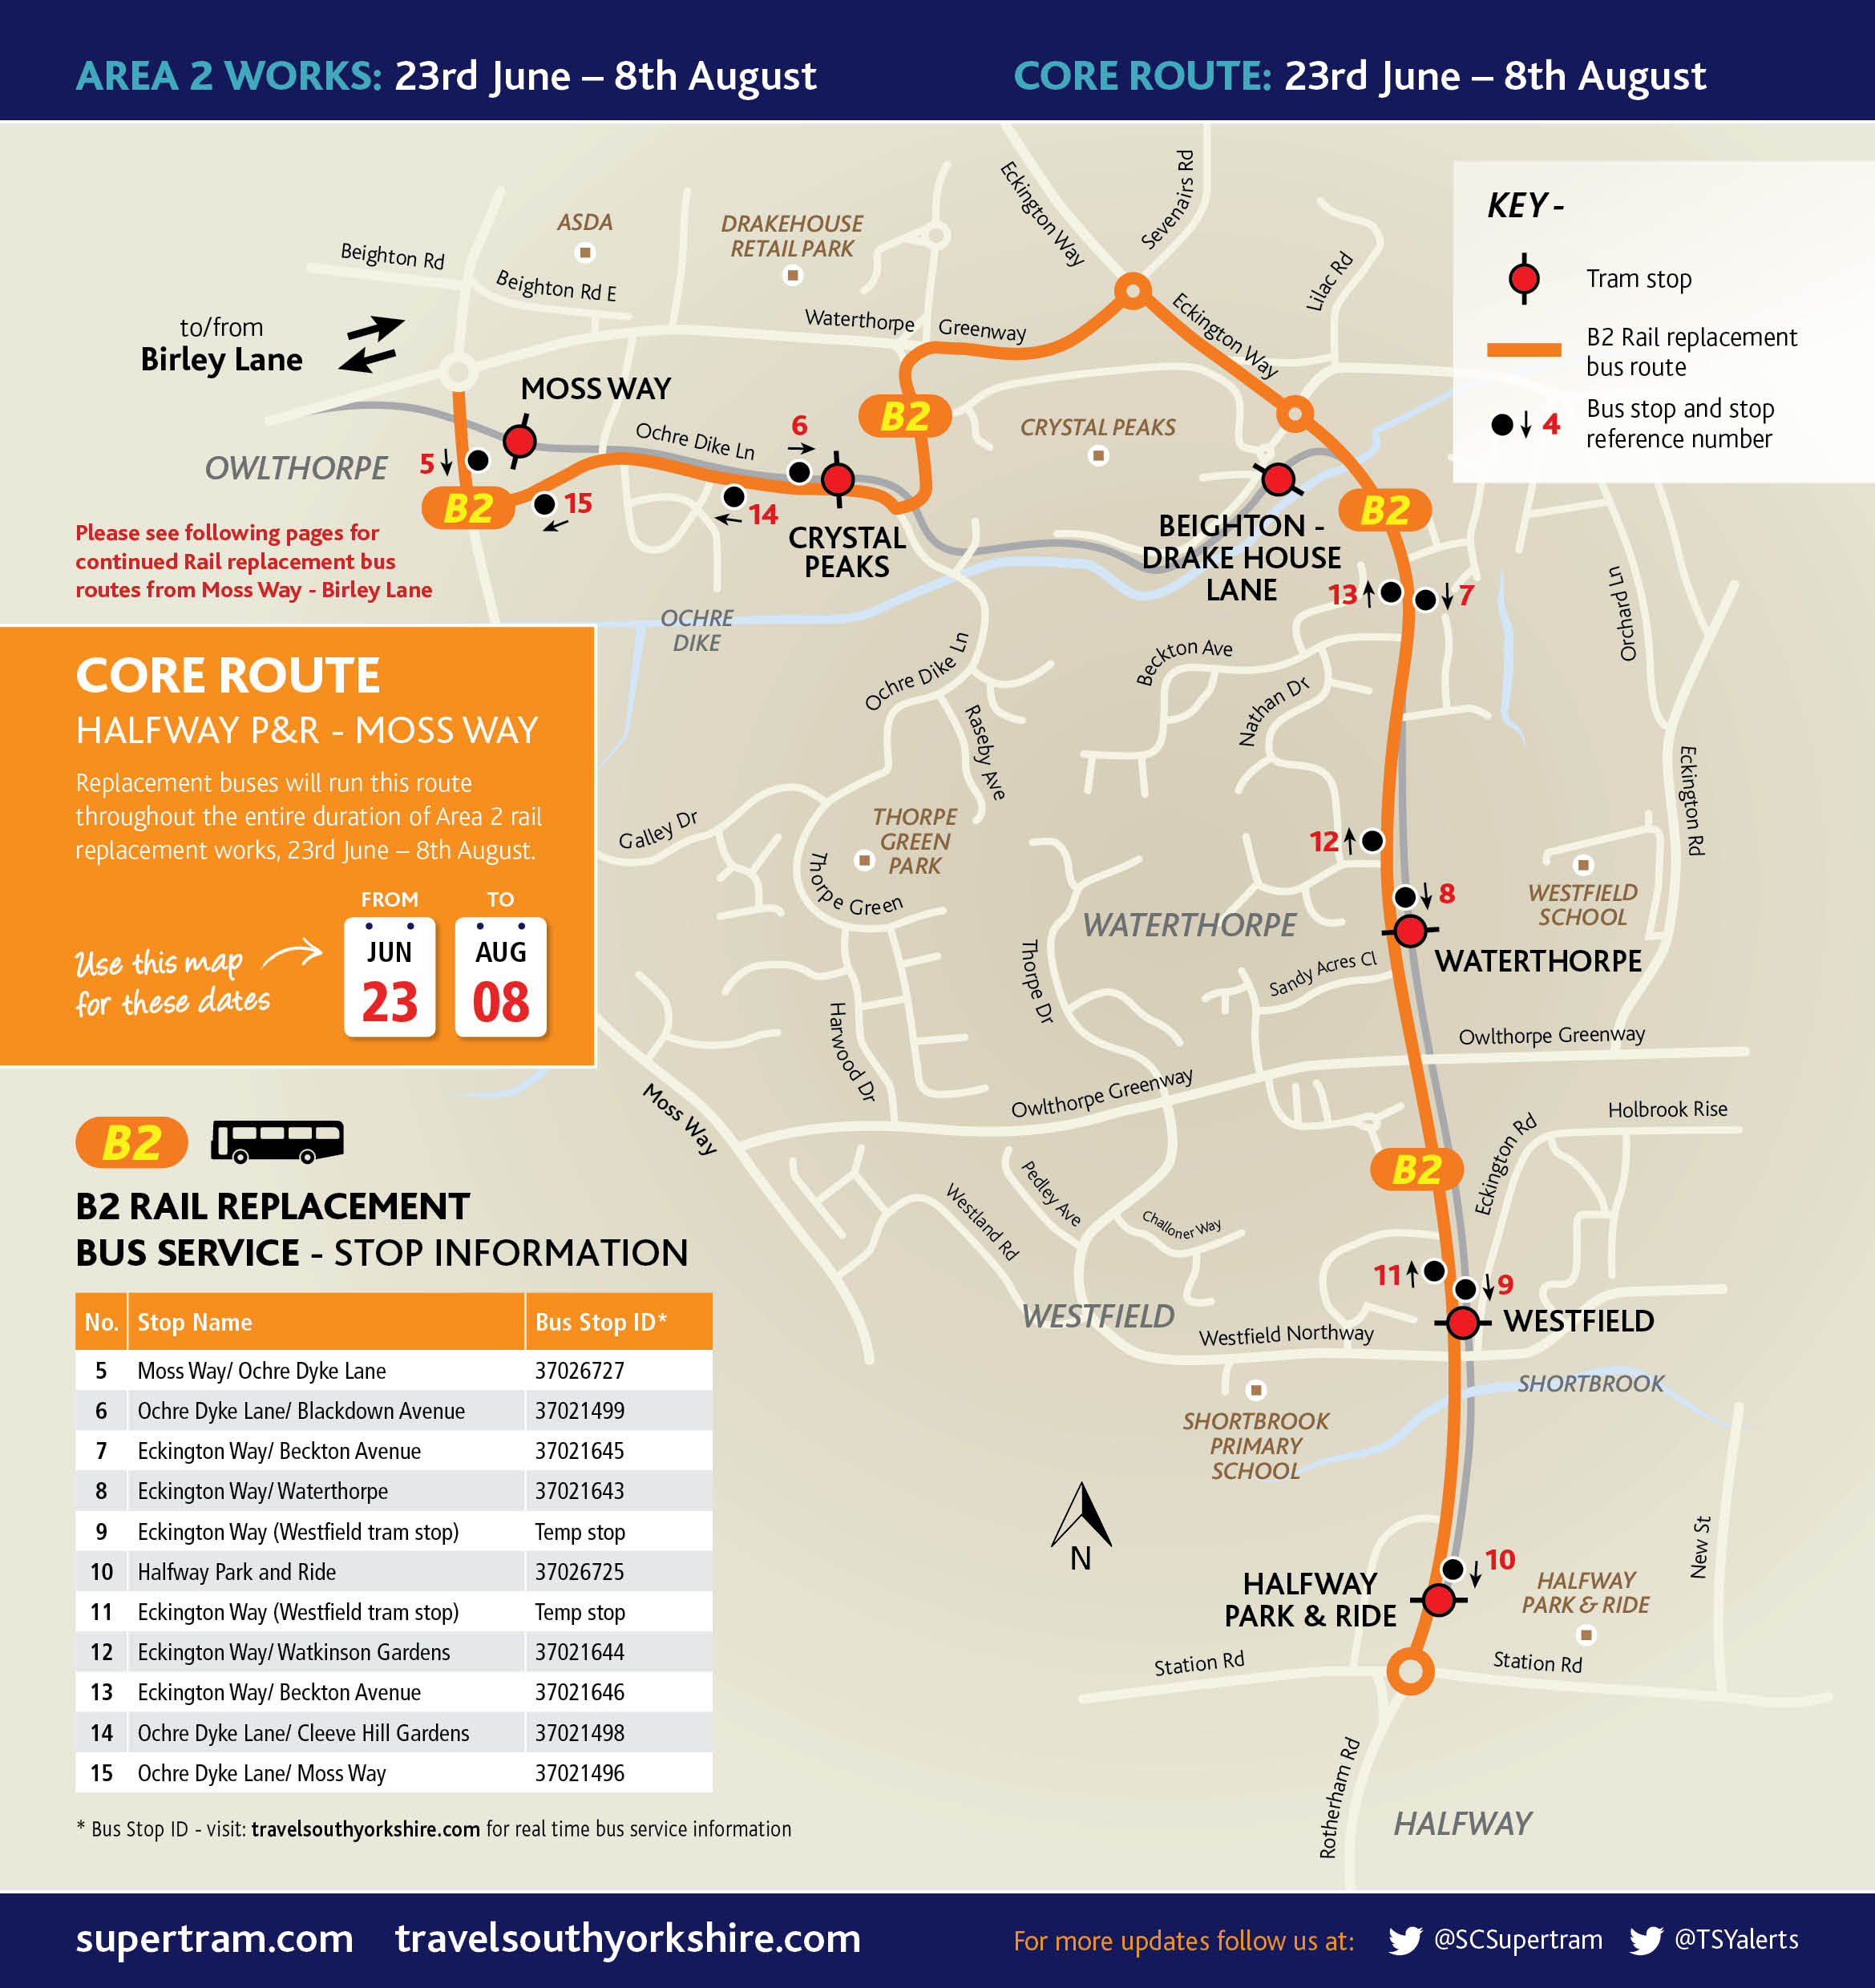 Area 2 Core Route: Halfway Park and Ride to Moss Way